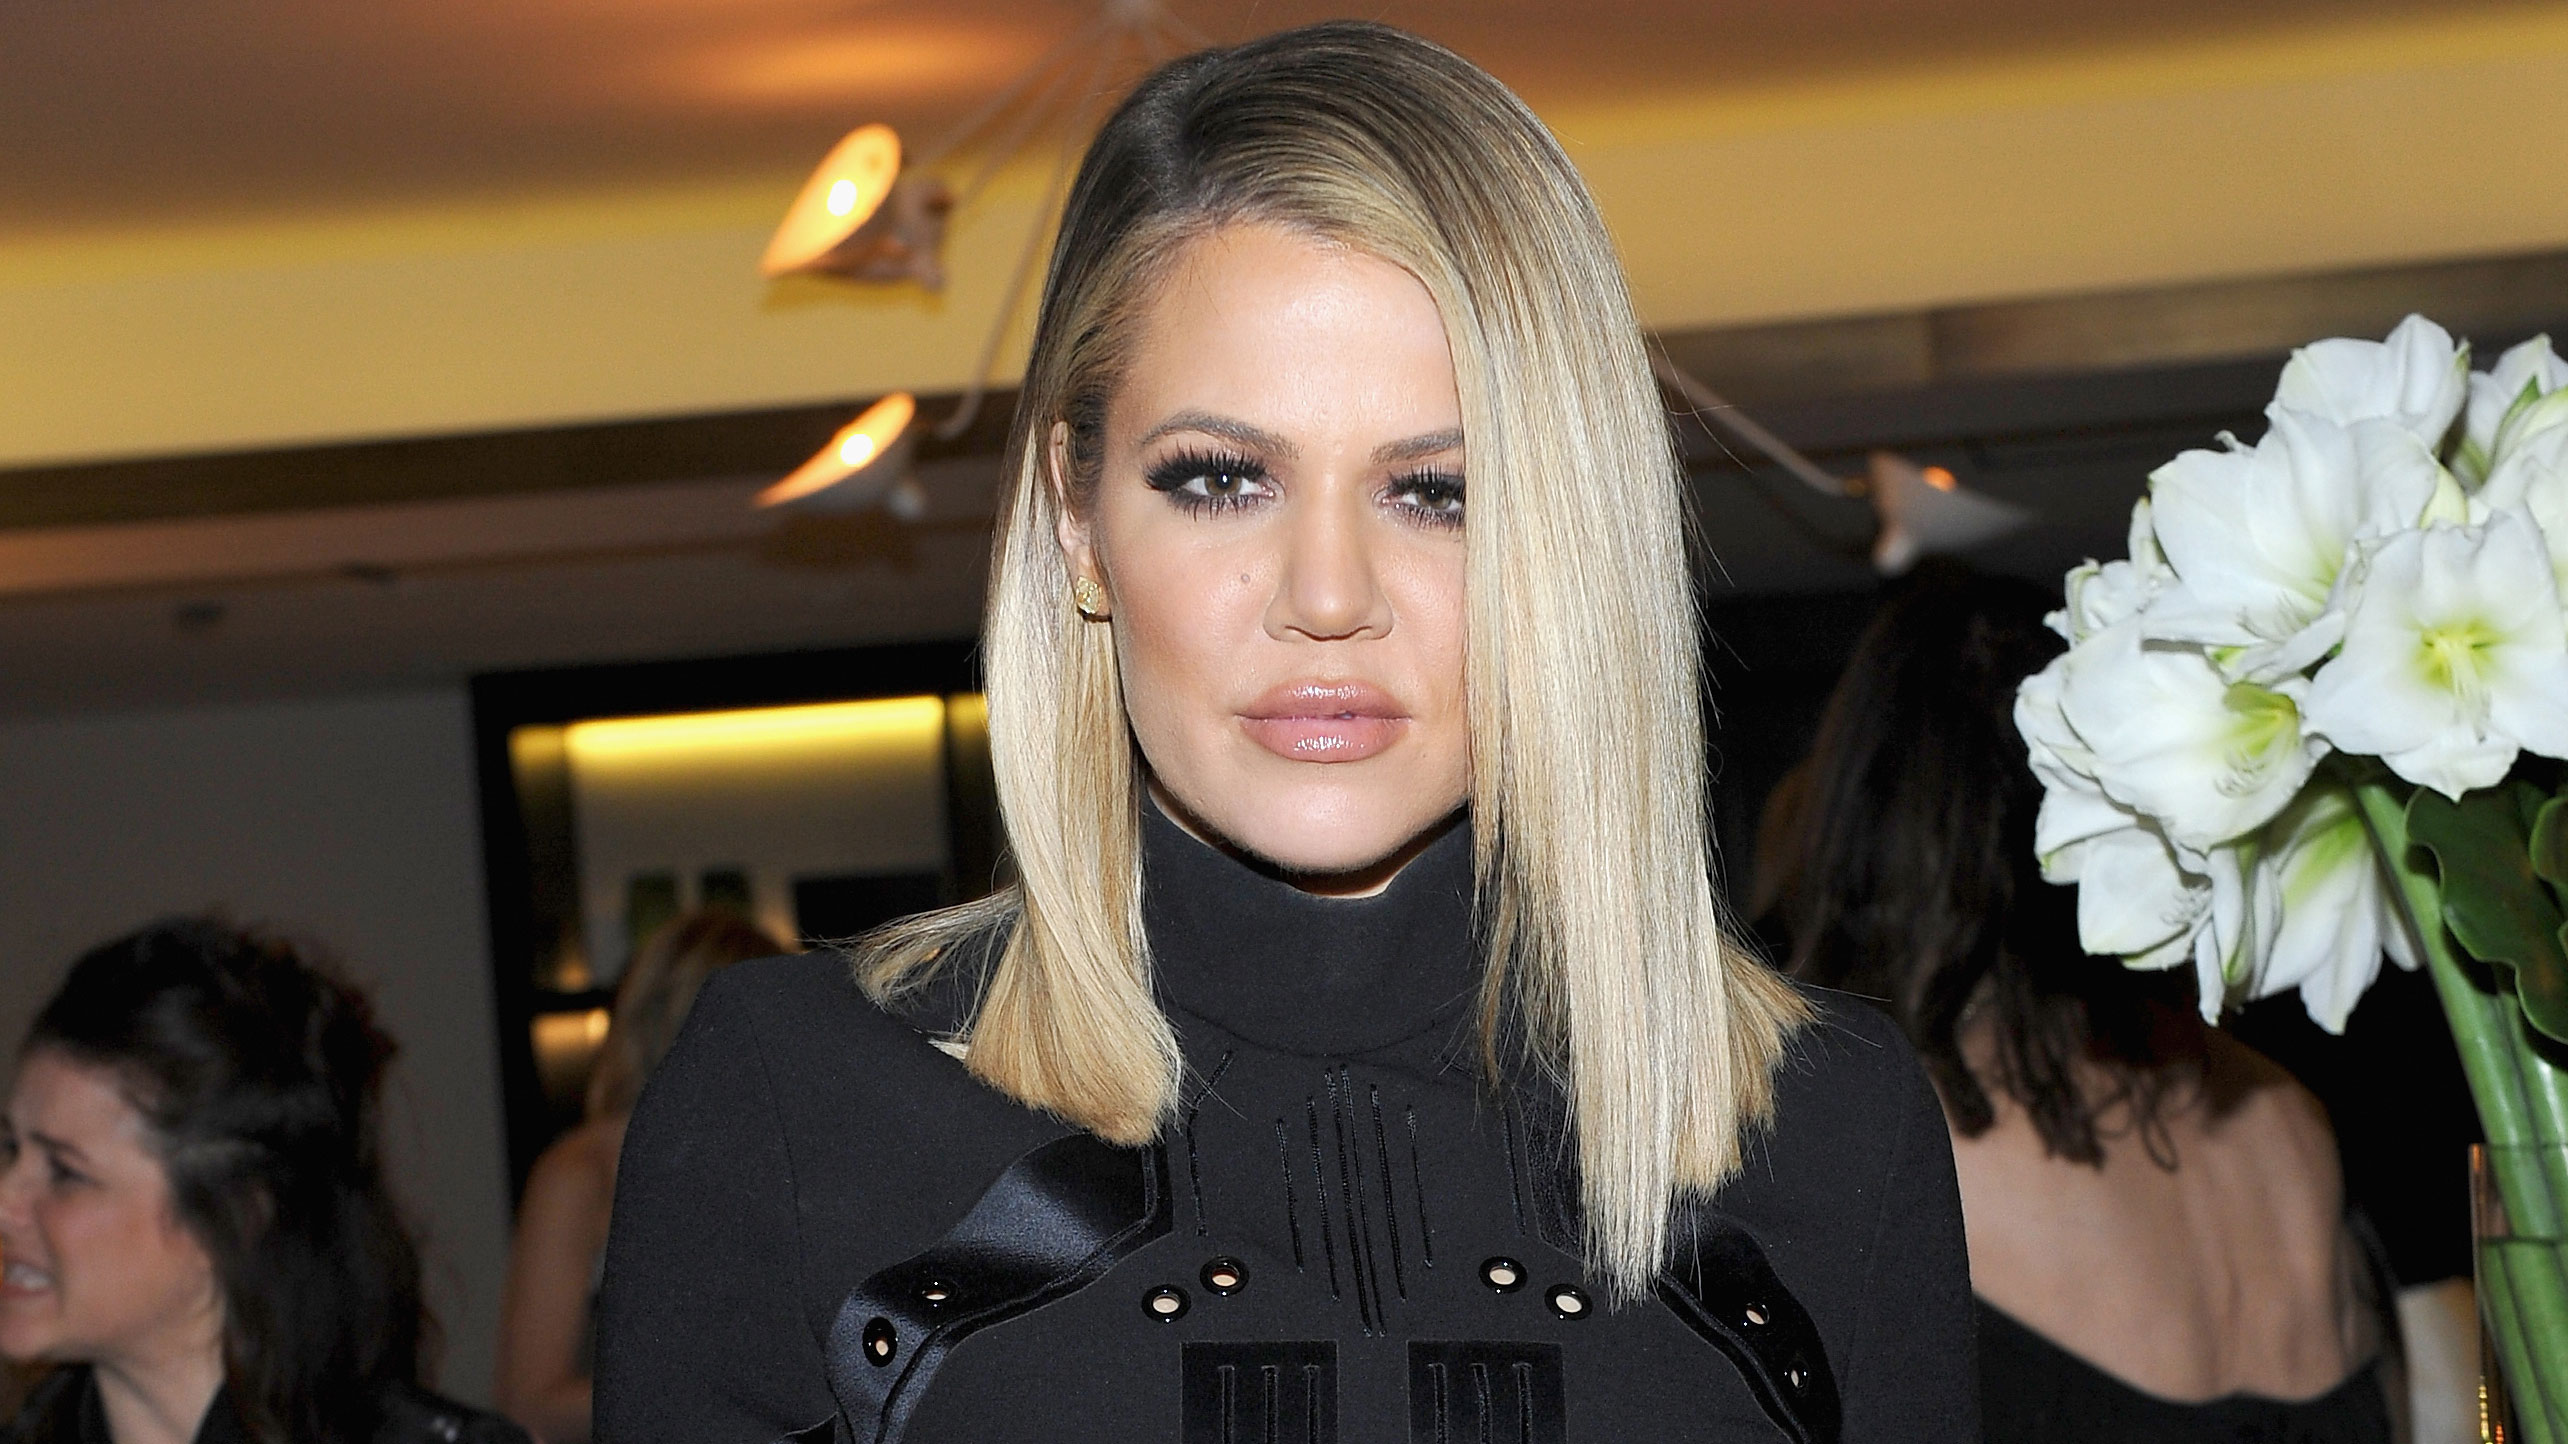 WTF: Khloé Kardashian Looks Unrecognizable in This New Pic